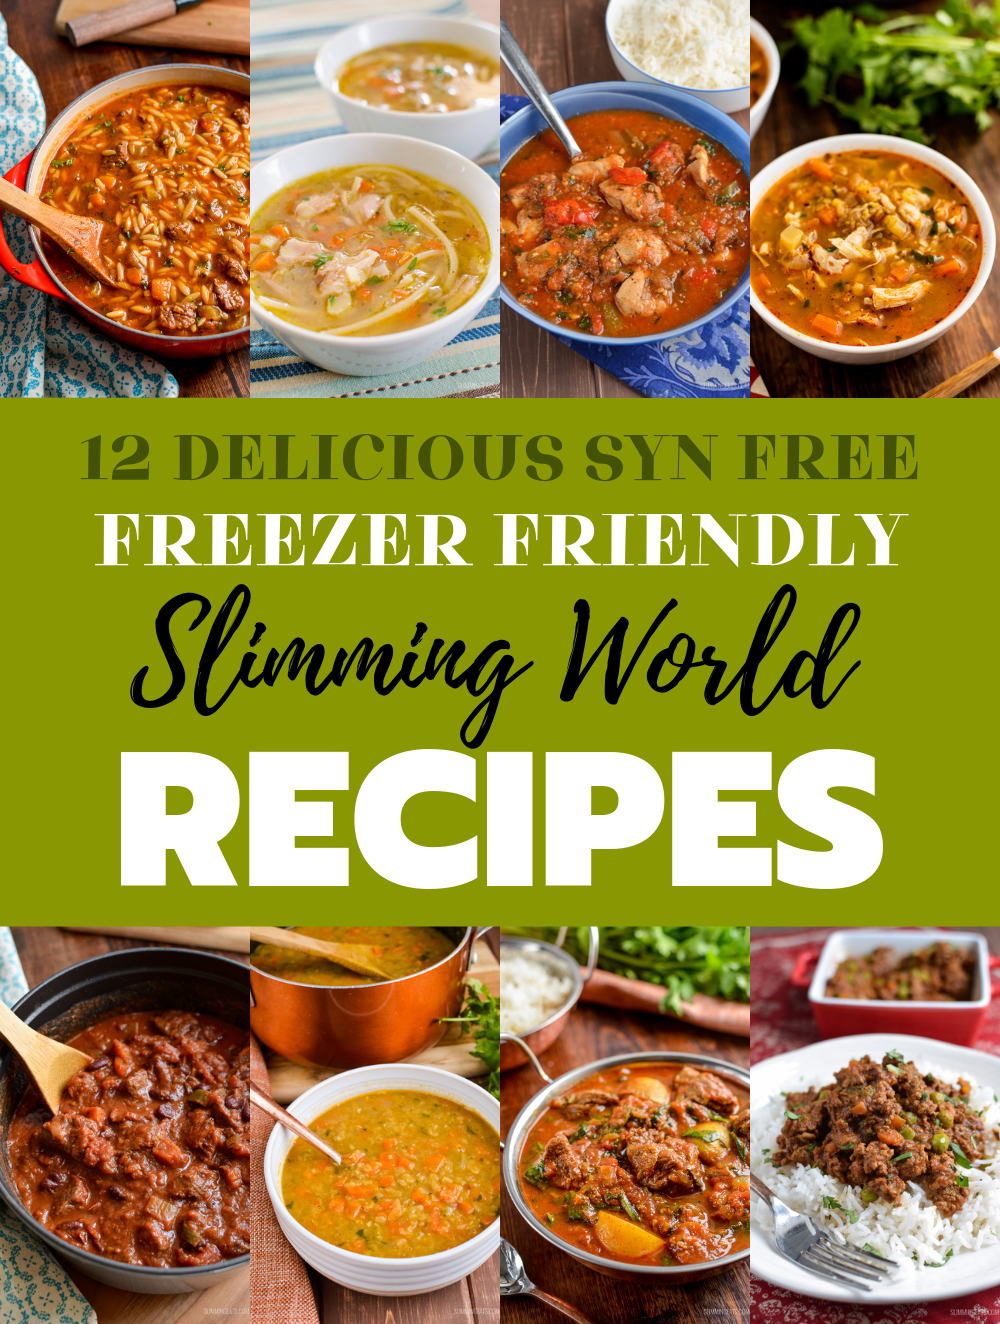 12 Delicious Syn Free Slimming World Freezer Friendly Meals collage